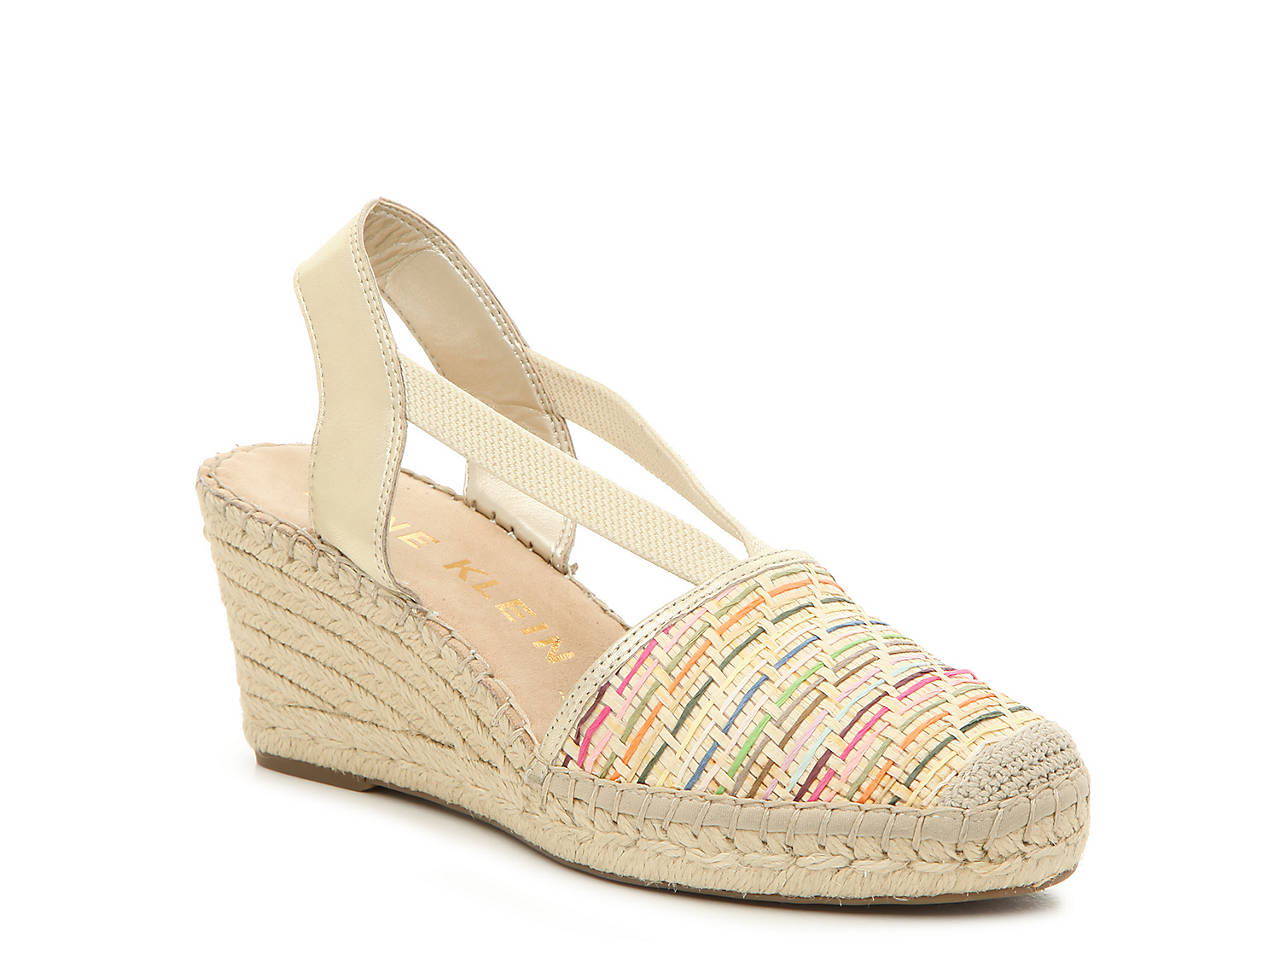 aac0f4c7981b Anne Klein Abbey Espadrille Wedge Sandal Women s Shoes